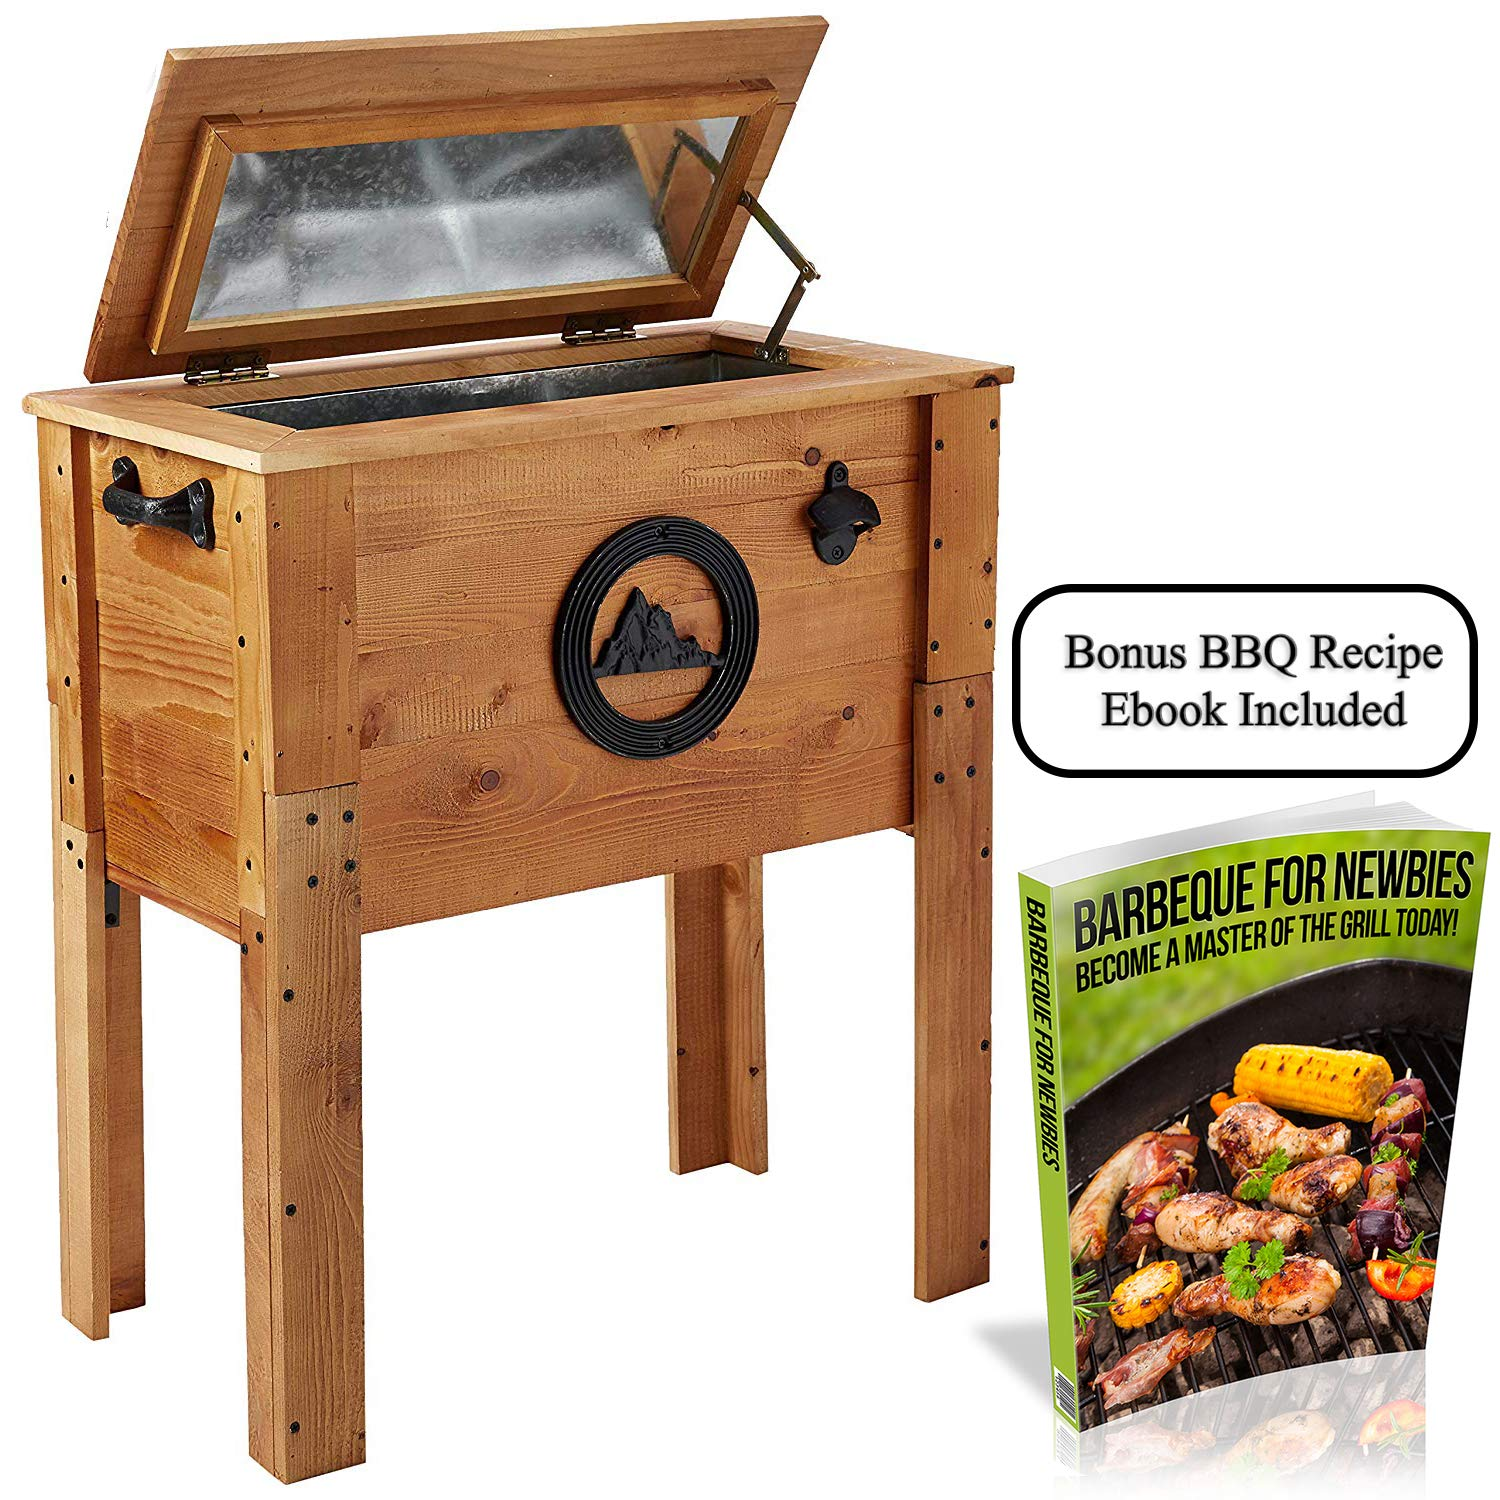 Backyard Expressions - Standing 45 Quart Wooden Outdoor Patio Cooler - Free BBQ Recipe Ebook to Help with Party Meal Planning - Among The Best Gifts for Dad or Mom!